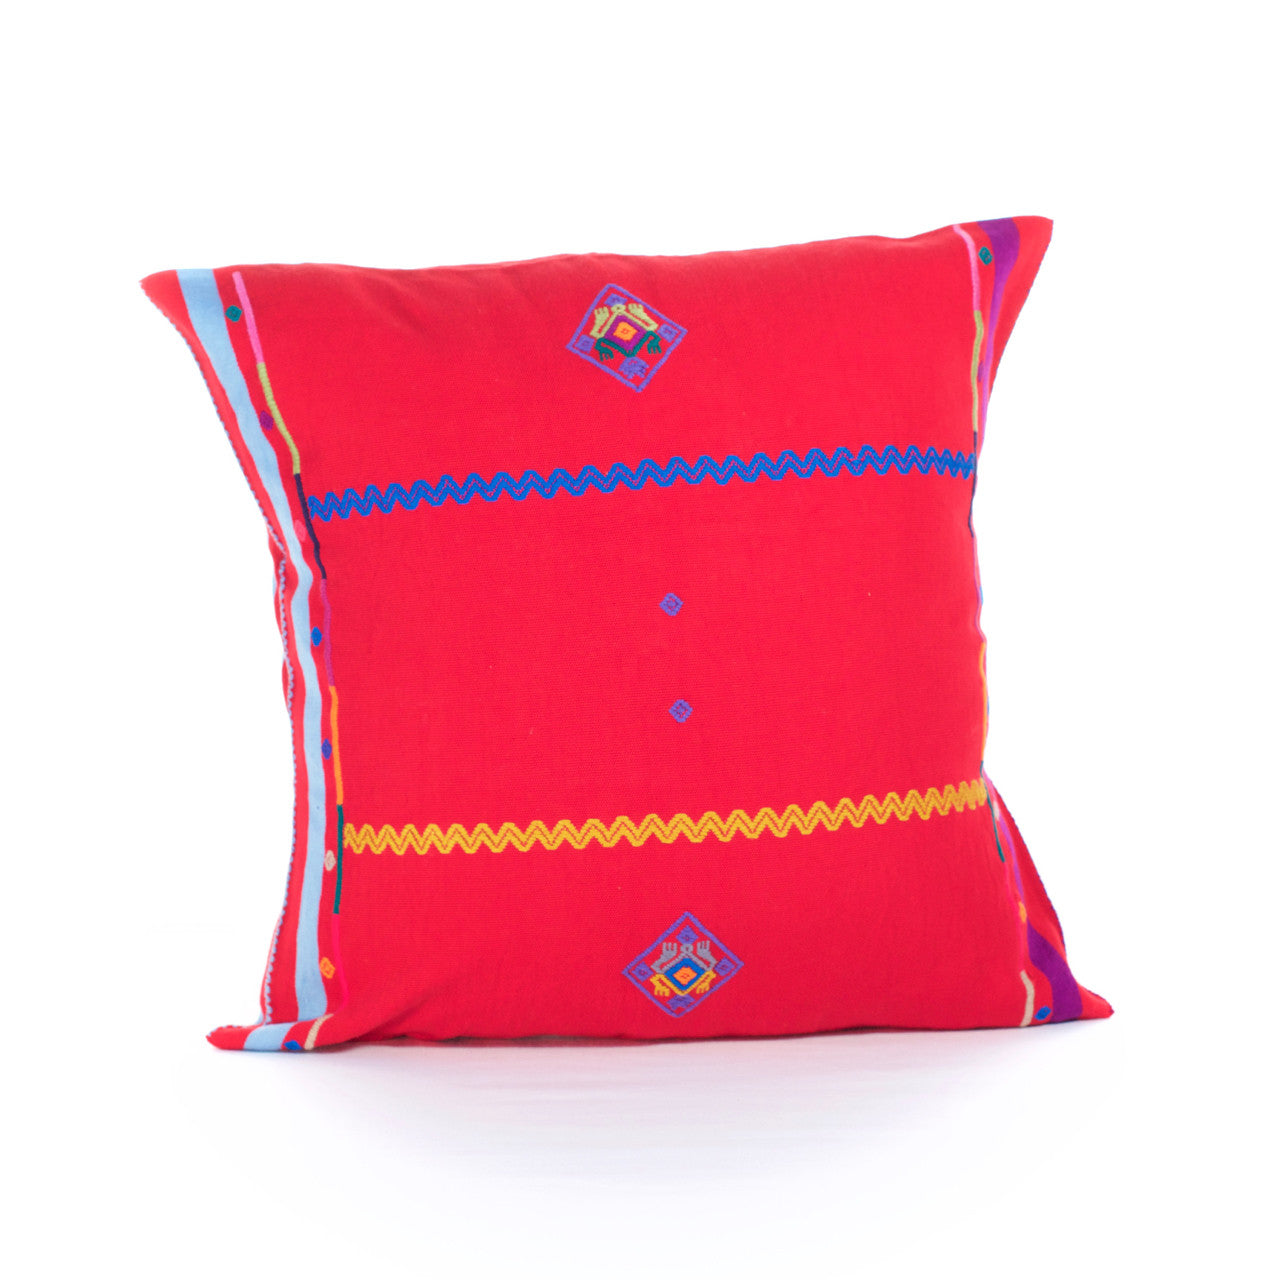 Sapo Cushion - Cielo Collective - Red with Purple & Pale Blue Stripe - 1